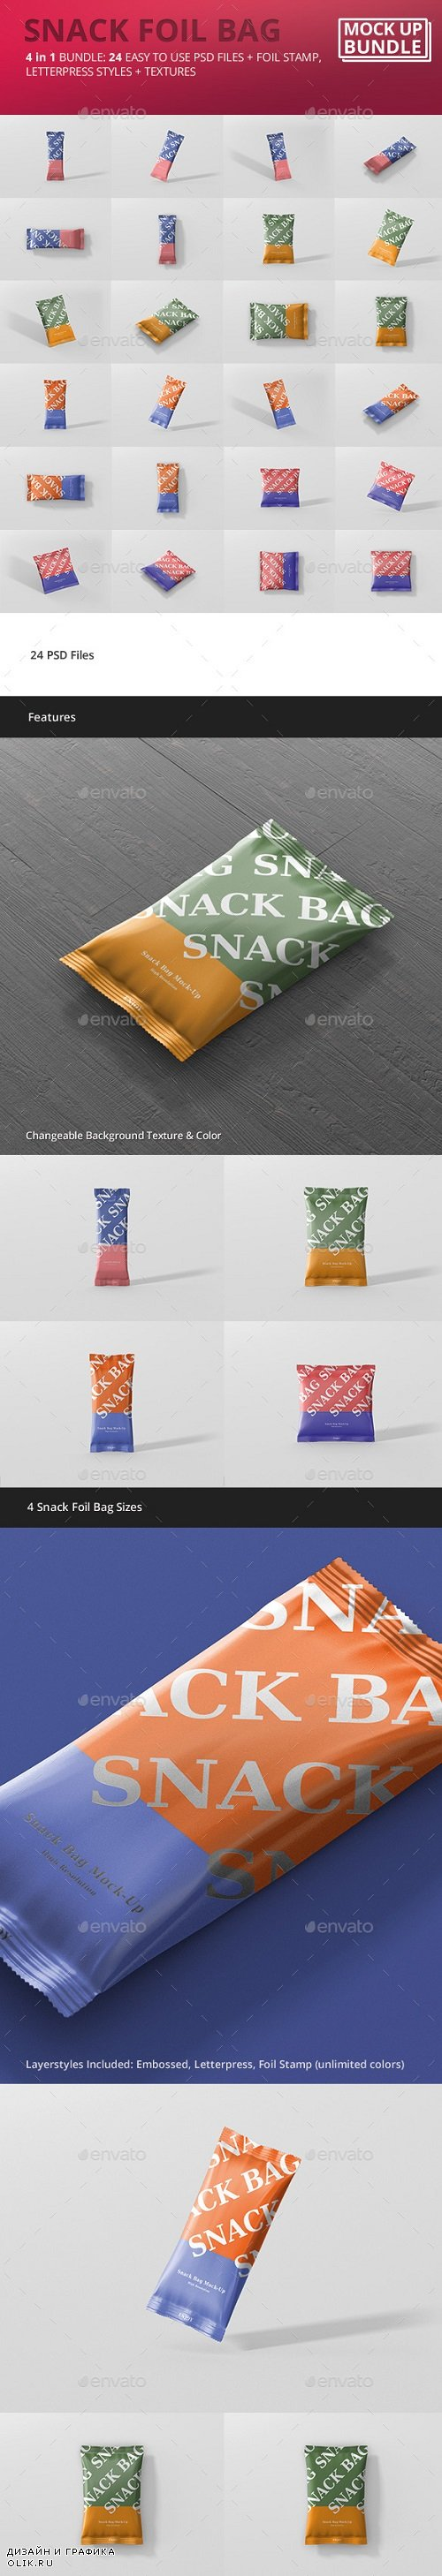 Snack Foil Bag Mockup Bundle - 20337618